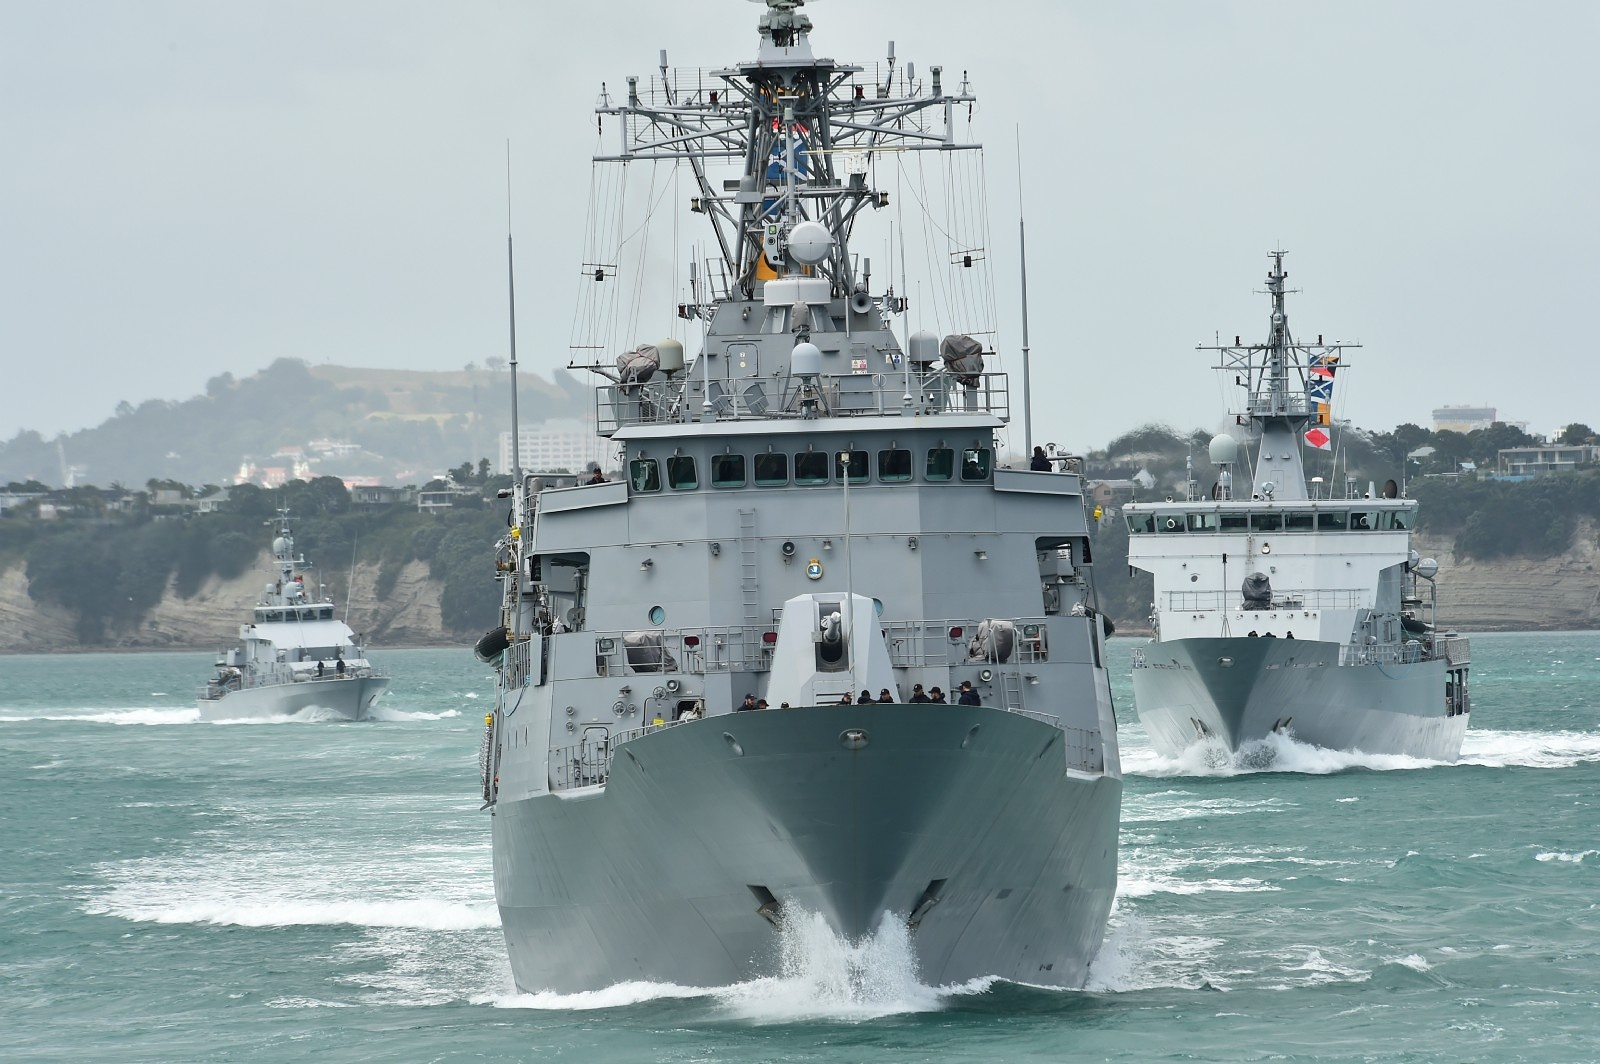 NZDF gets maritime fleet ready for operations